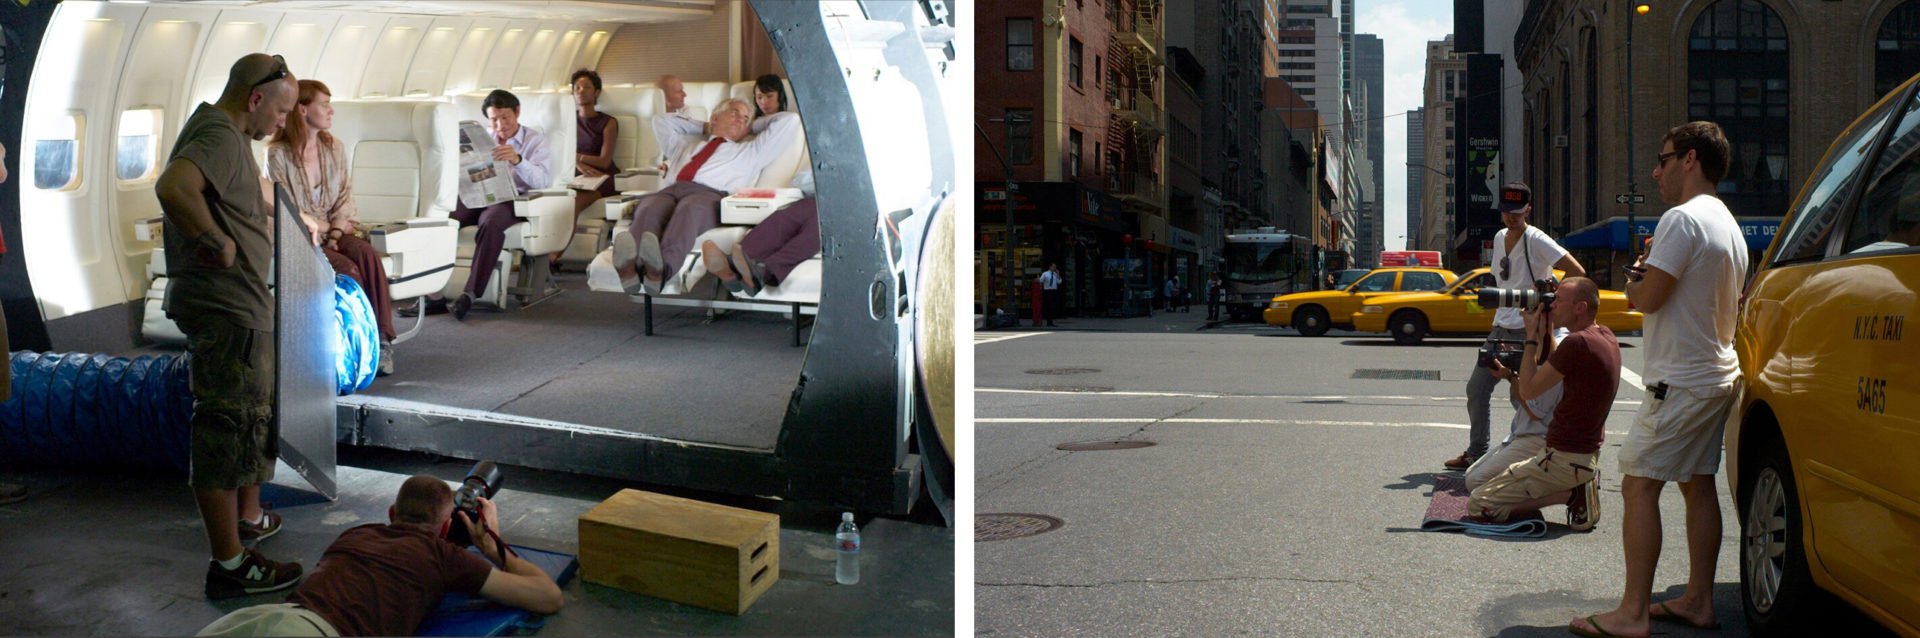 Shooting on an aircraft set in LA and a street scene in New York for above the line Advertising with models.